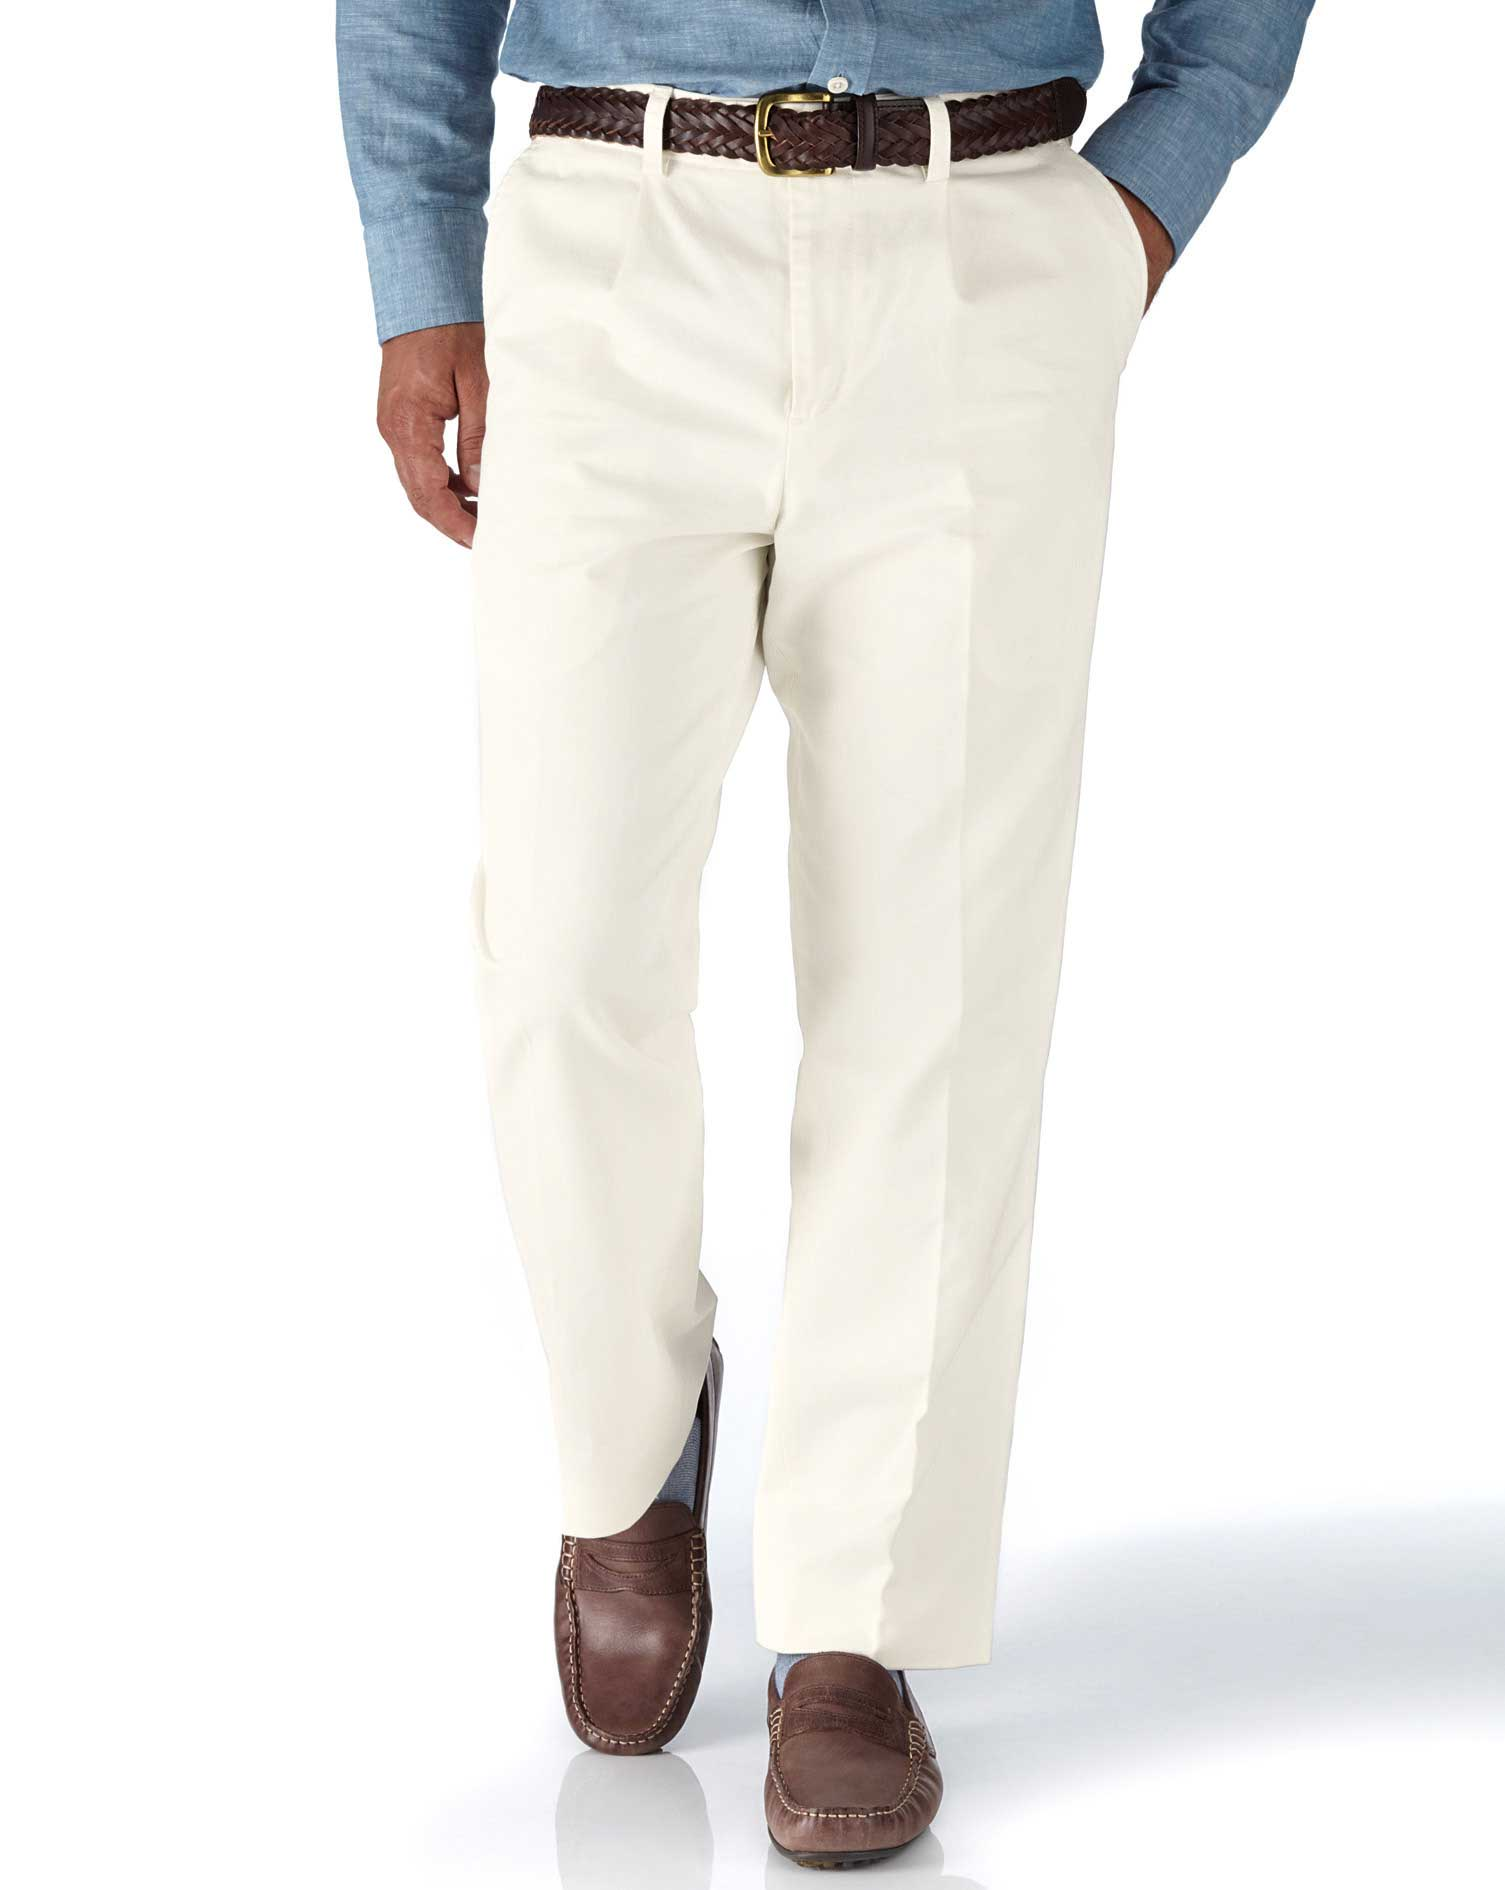 White Classic Fit Single Pleat Weekend Cotton Chino Trousers Size W36 L32 by Charles Tyrwhitt